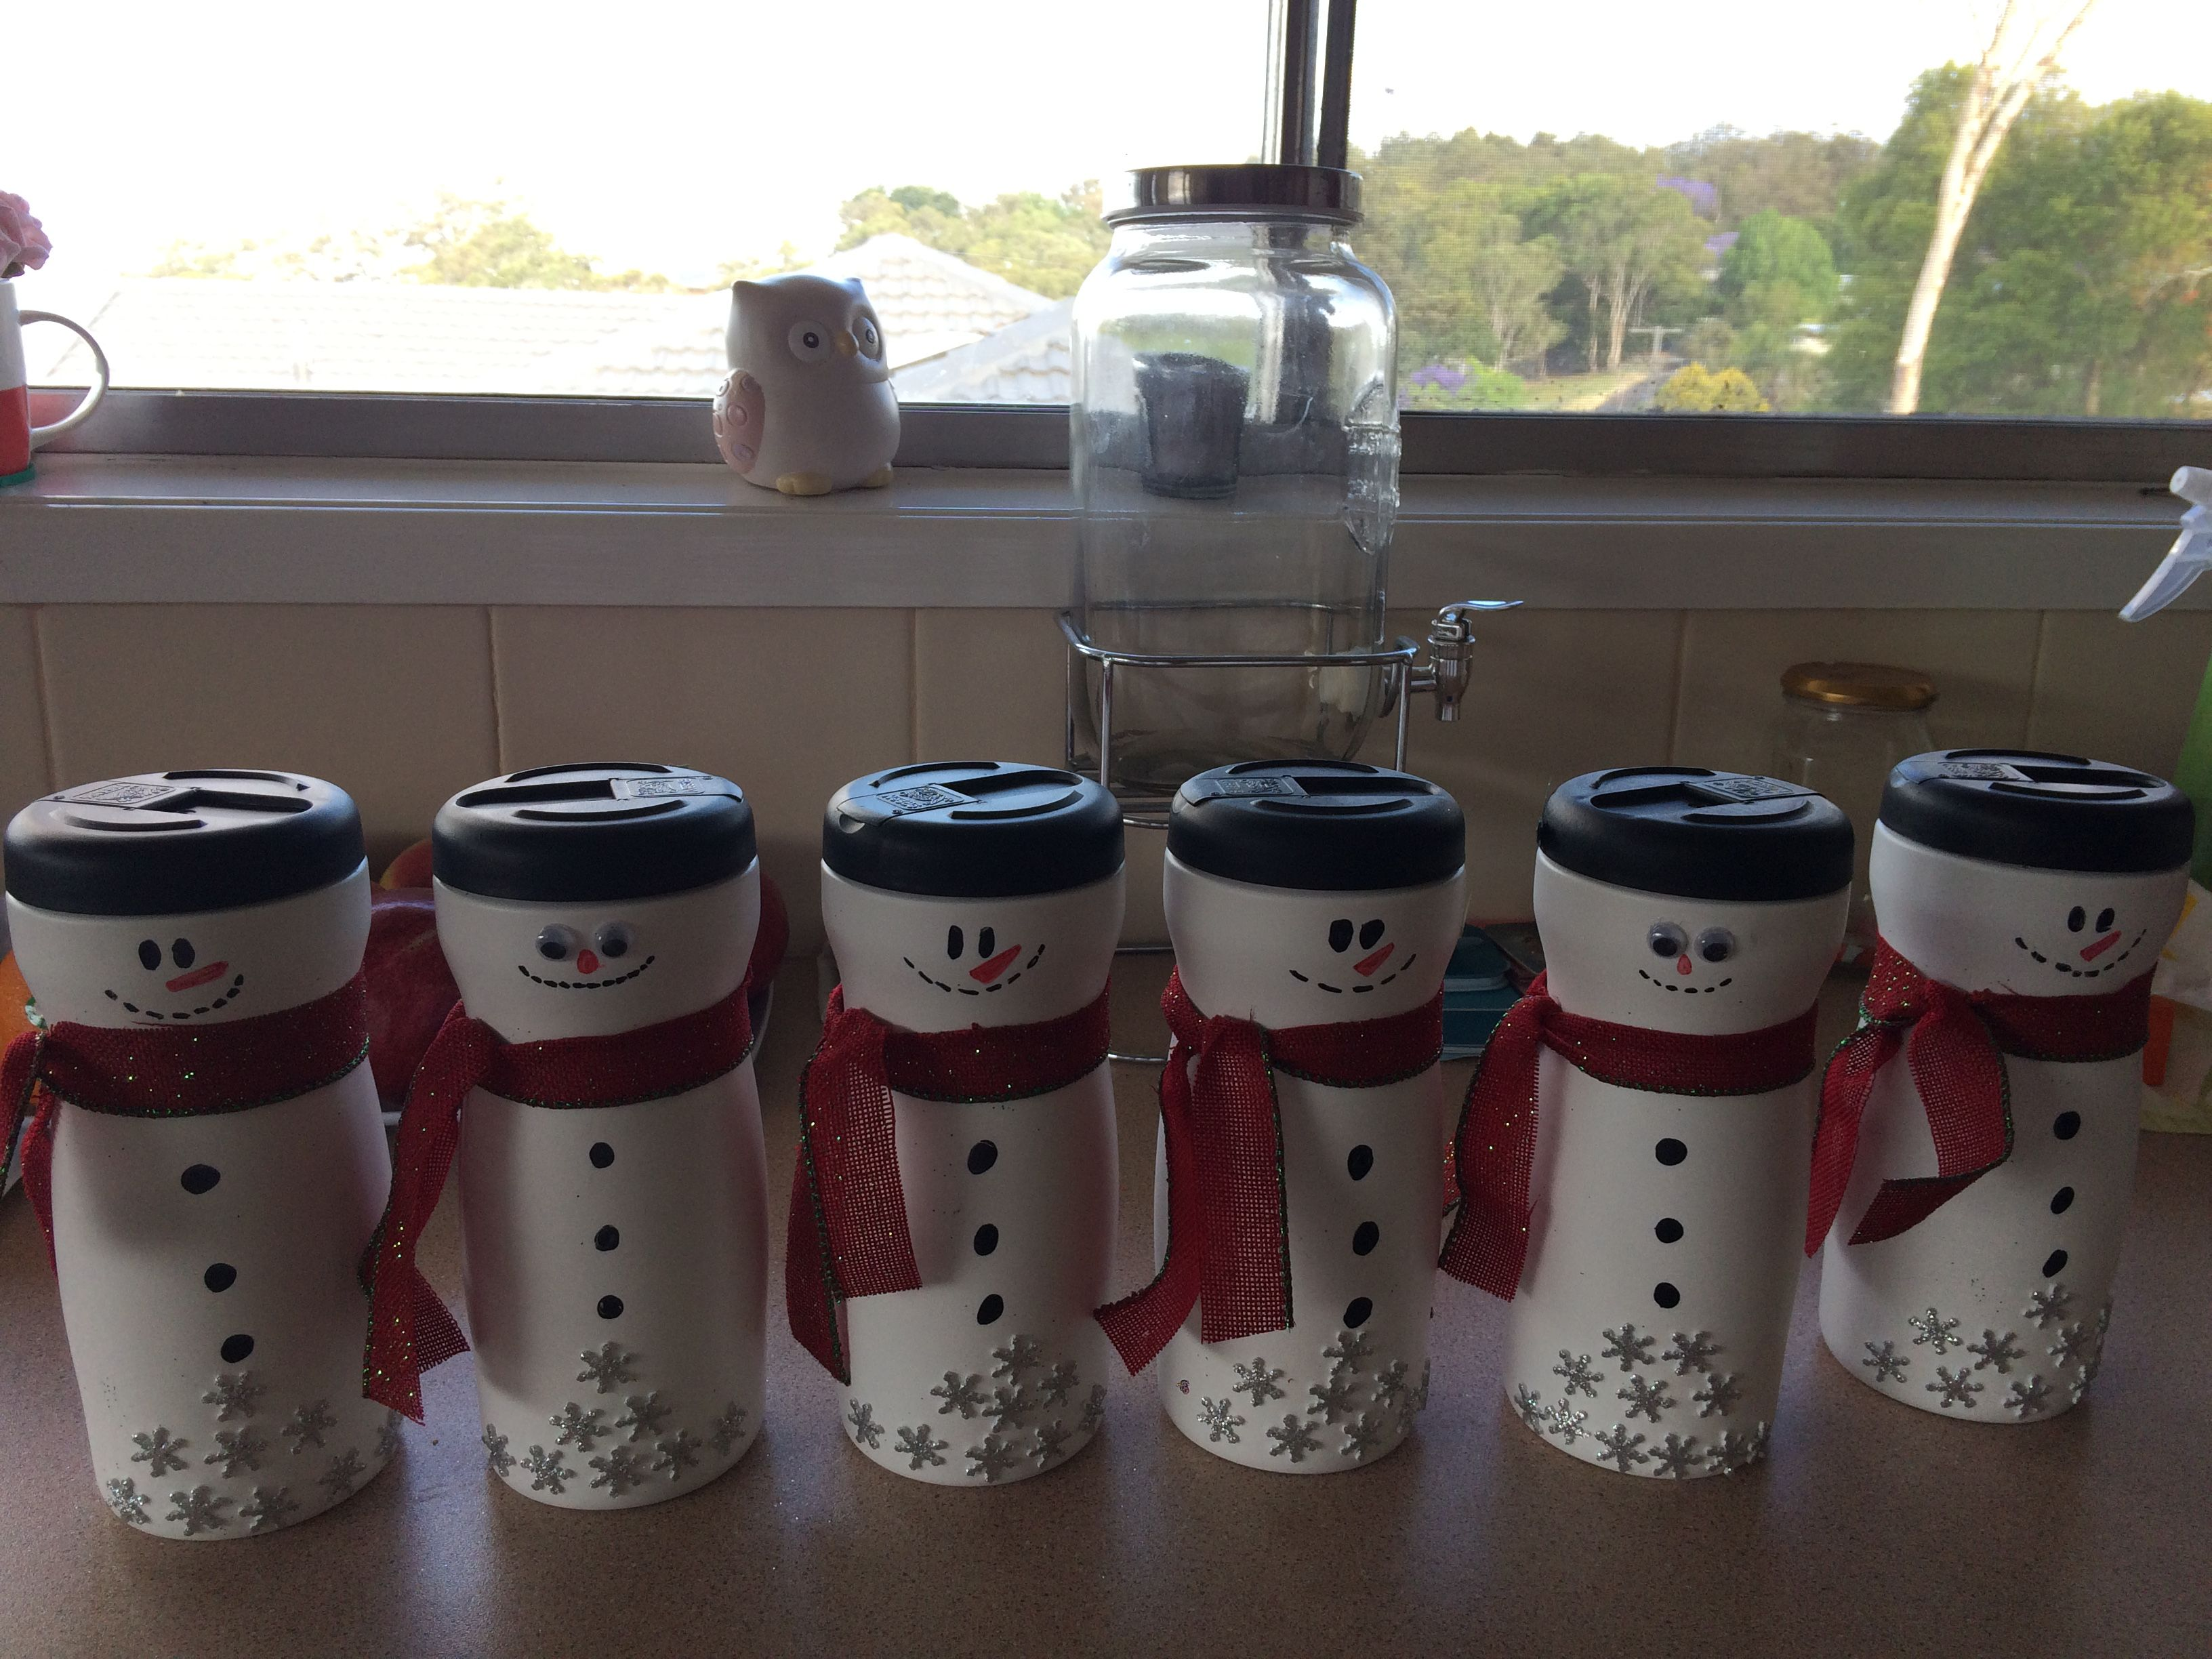 Snow man cookie jars as Christmas gifts made the jars out ...